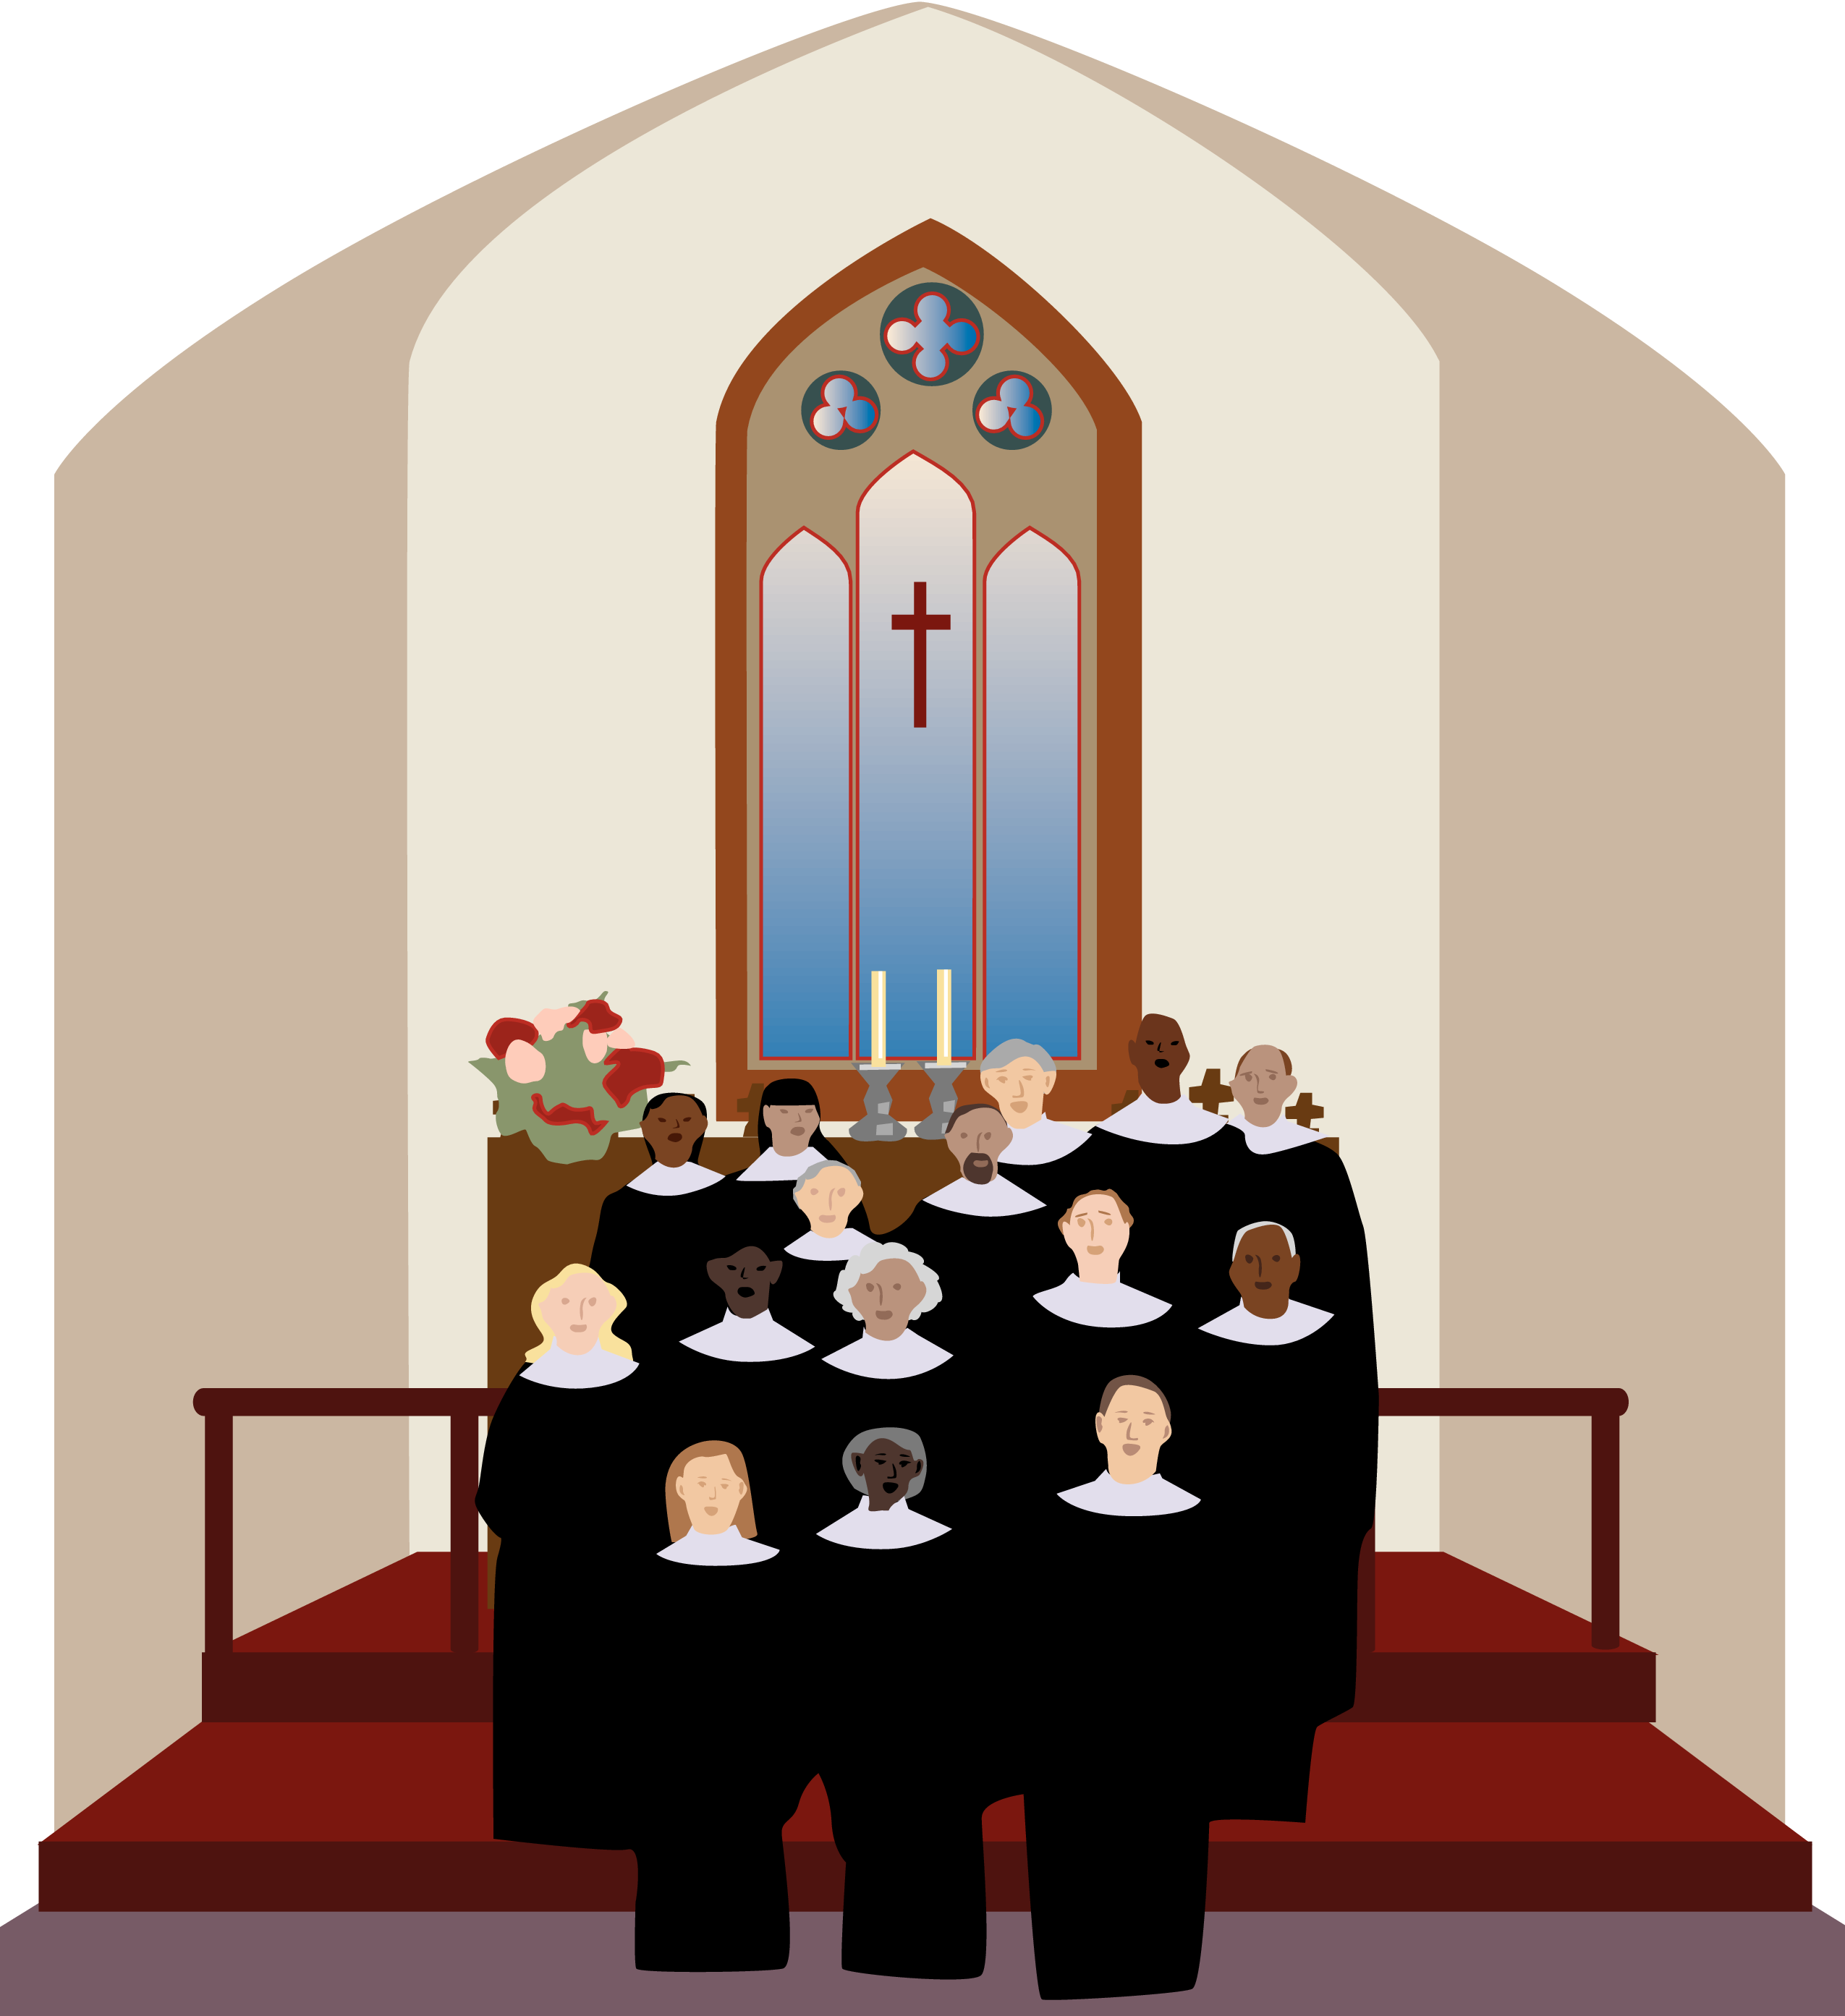 Altar in the Catholic Church Sanctuary Clip art